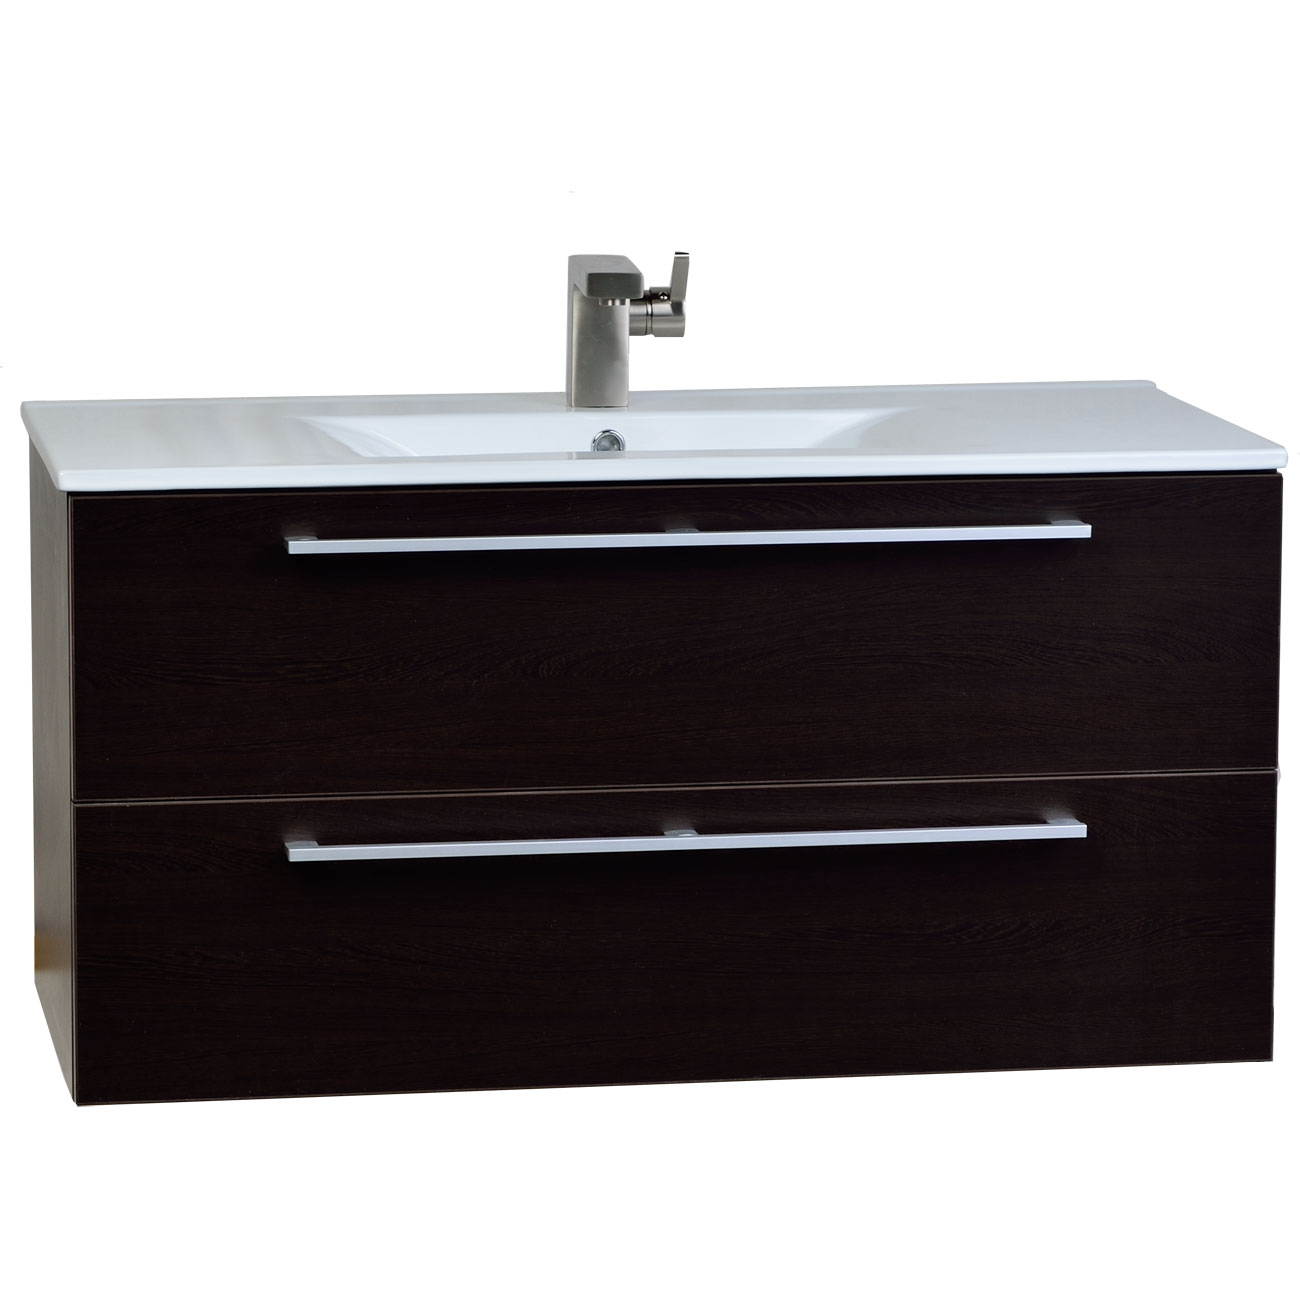 Buy Caen 40 Wall Mount Modern Bathroom Vanity Set